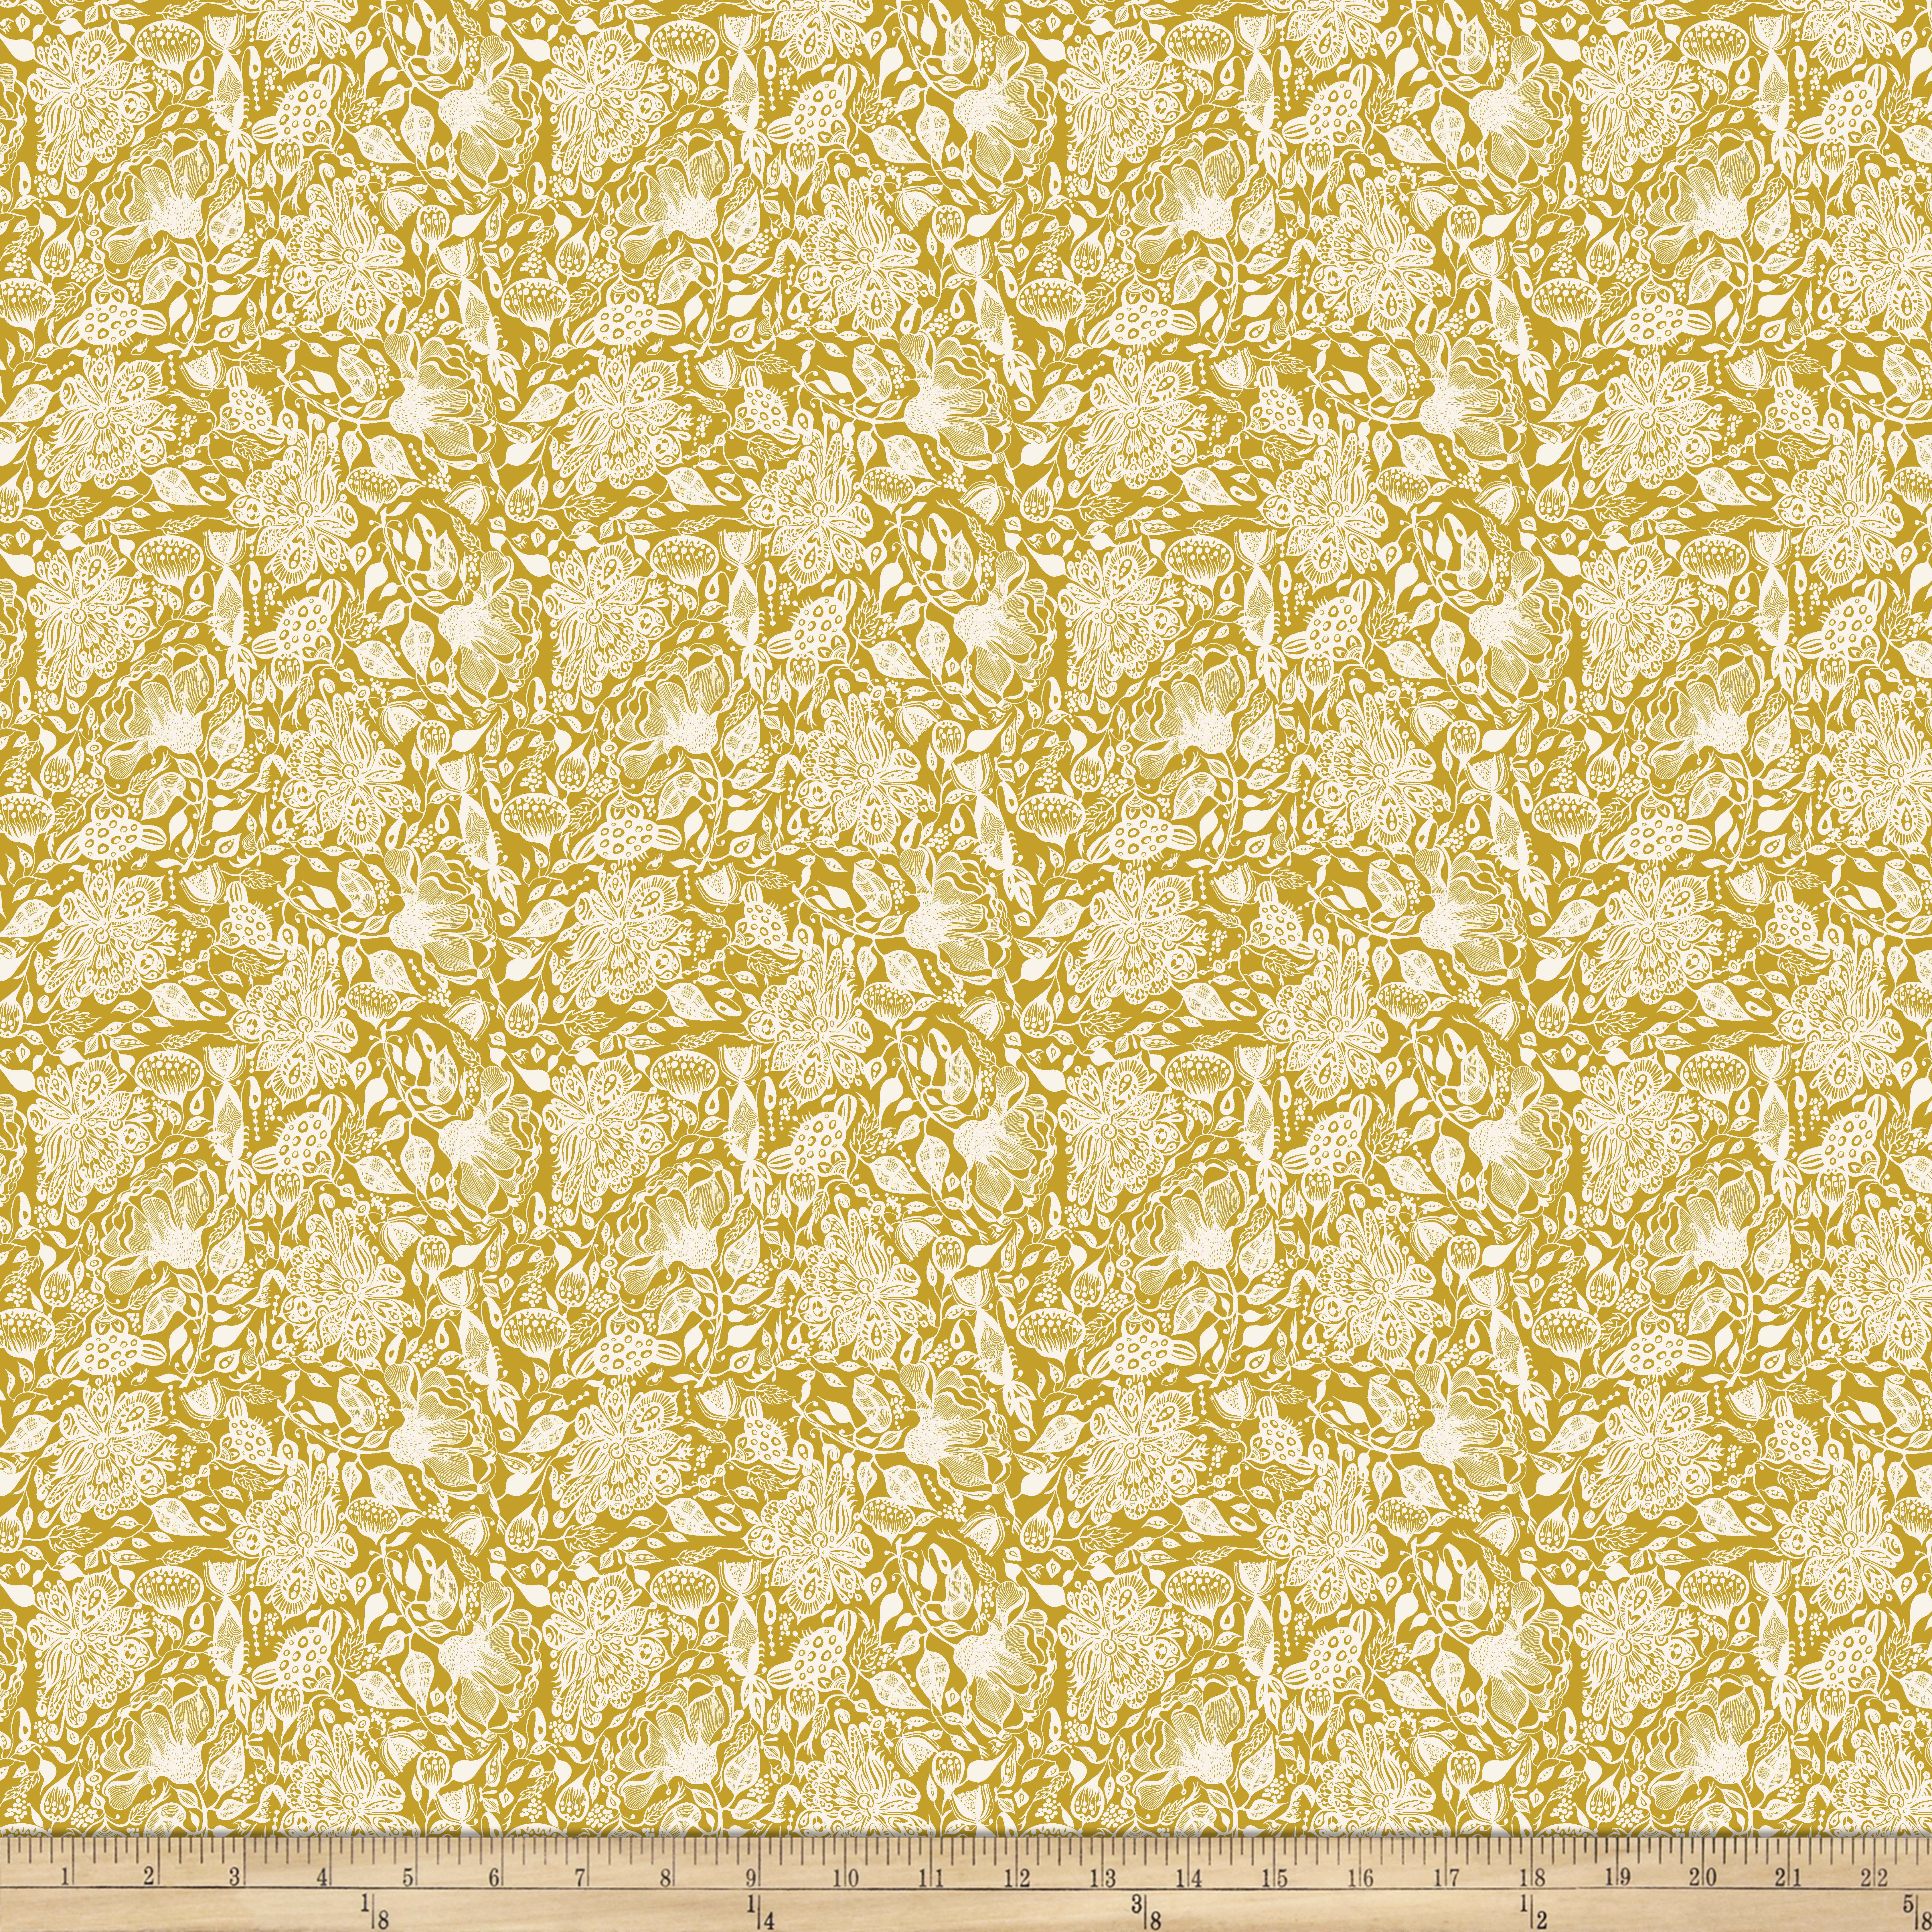 INOpets.com Anything for Pets Parents & Their Pets Garden Dreams Dream Mustard Fabric